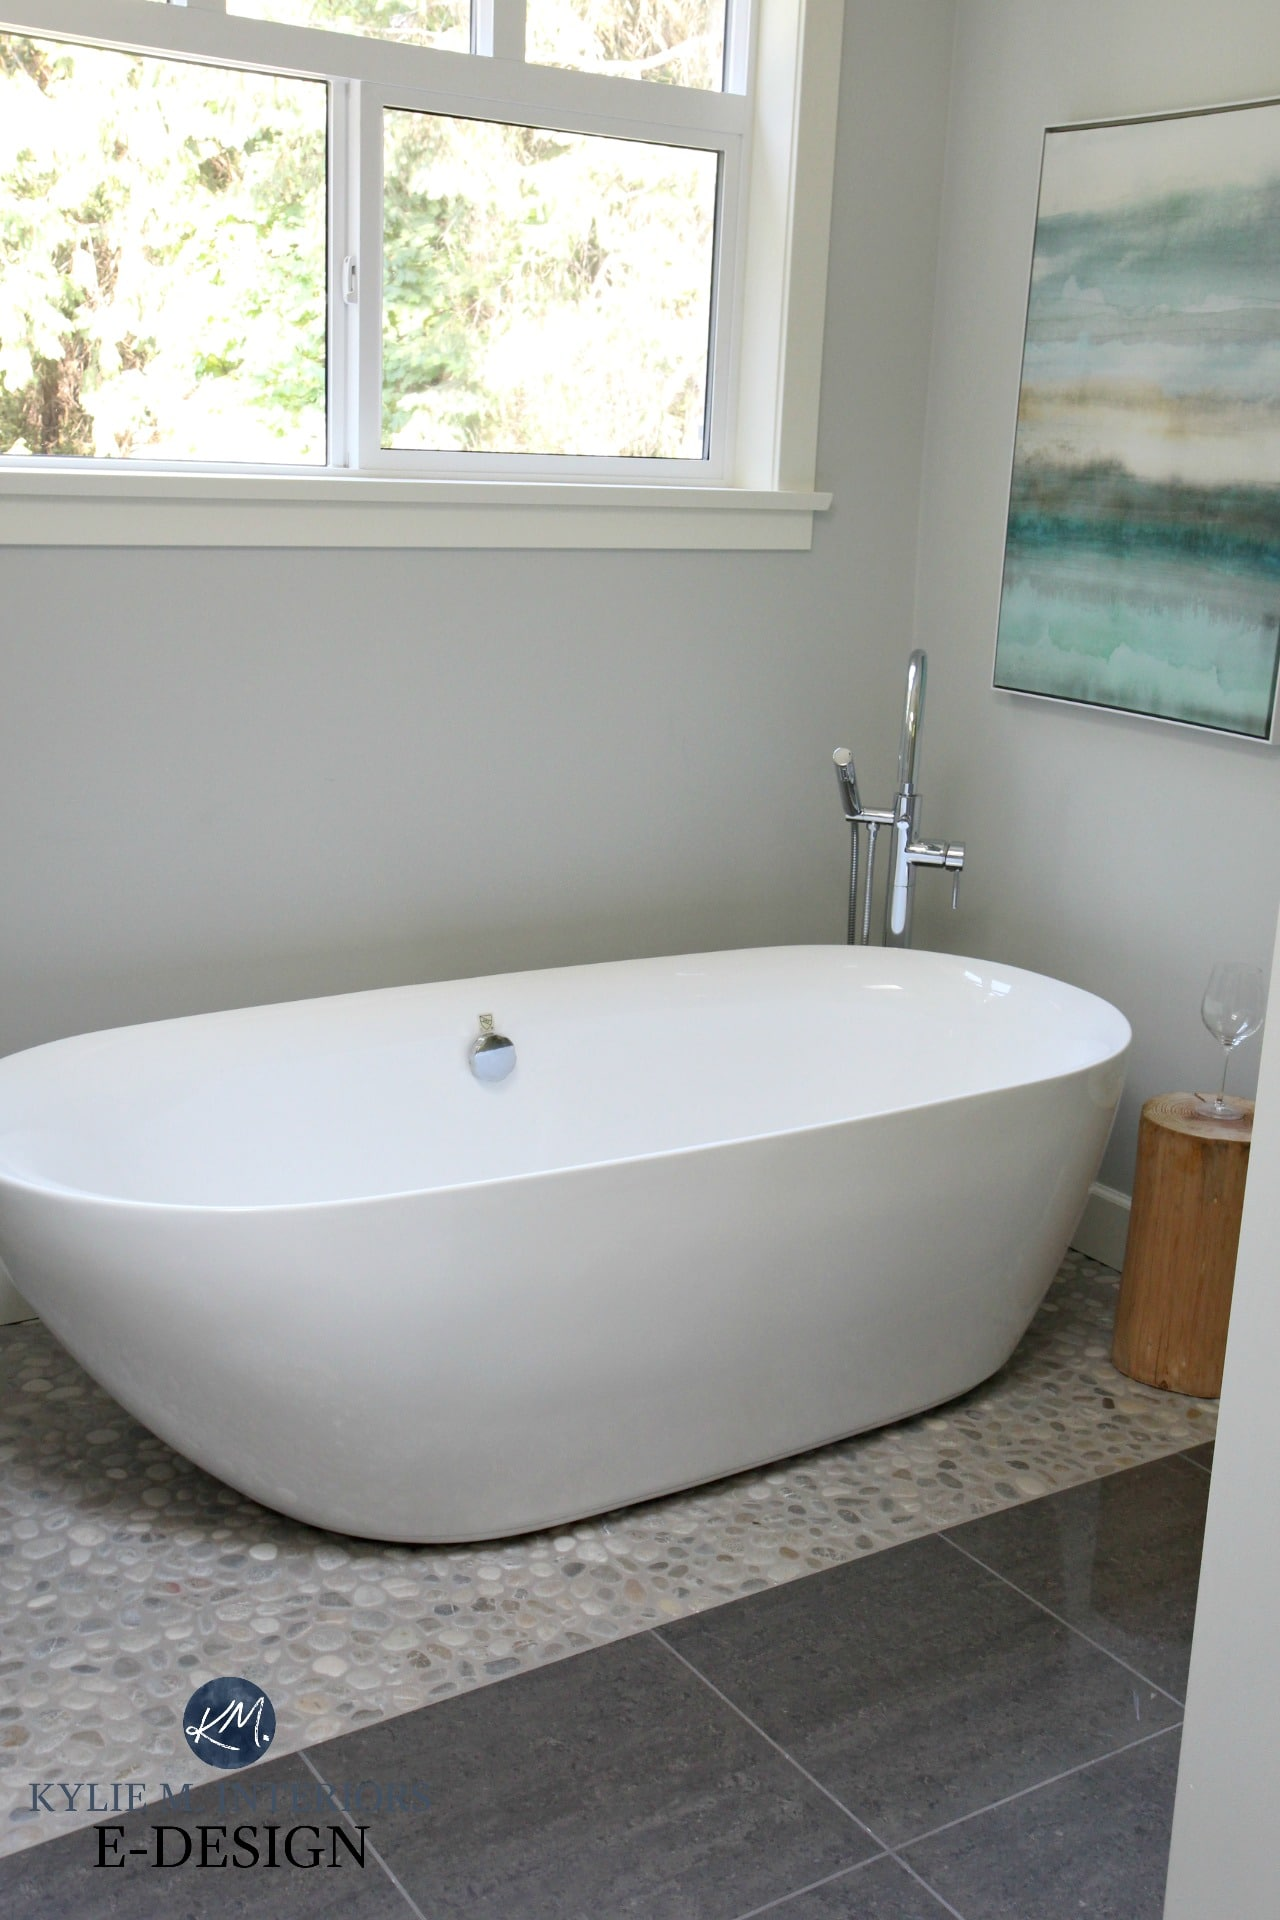 ... Tub On Pebble Tile Floor And Porcelain. Chrome Fixtures. Benjamin Moore  Wickham Gray. Kylie M Interiors Edesign, Edecor And Online Paint Colour  Expert ...